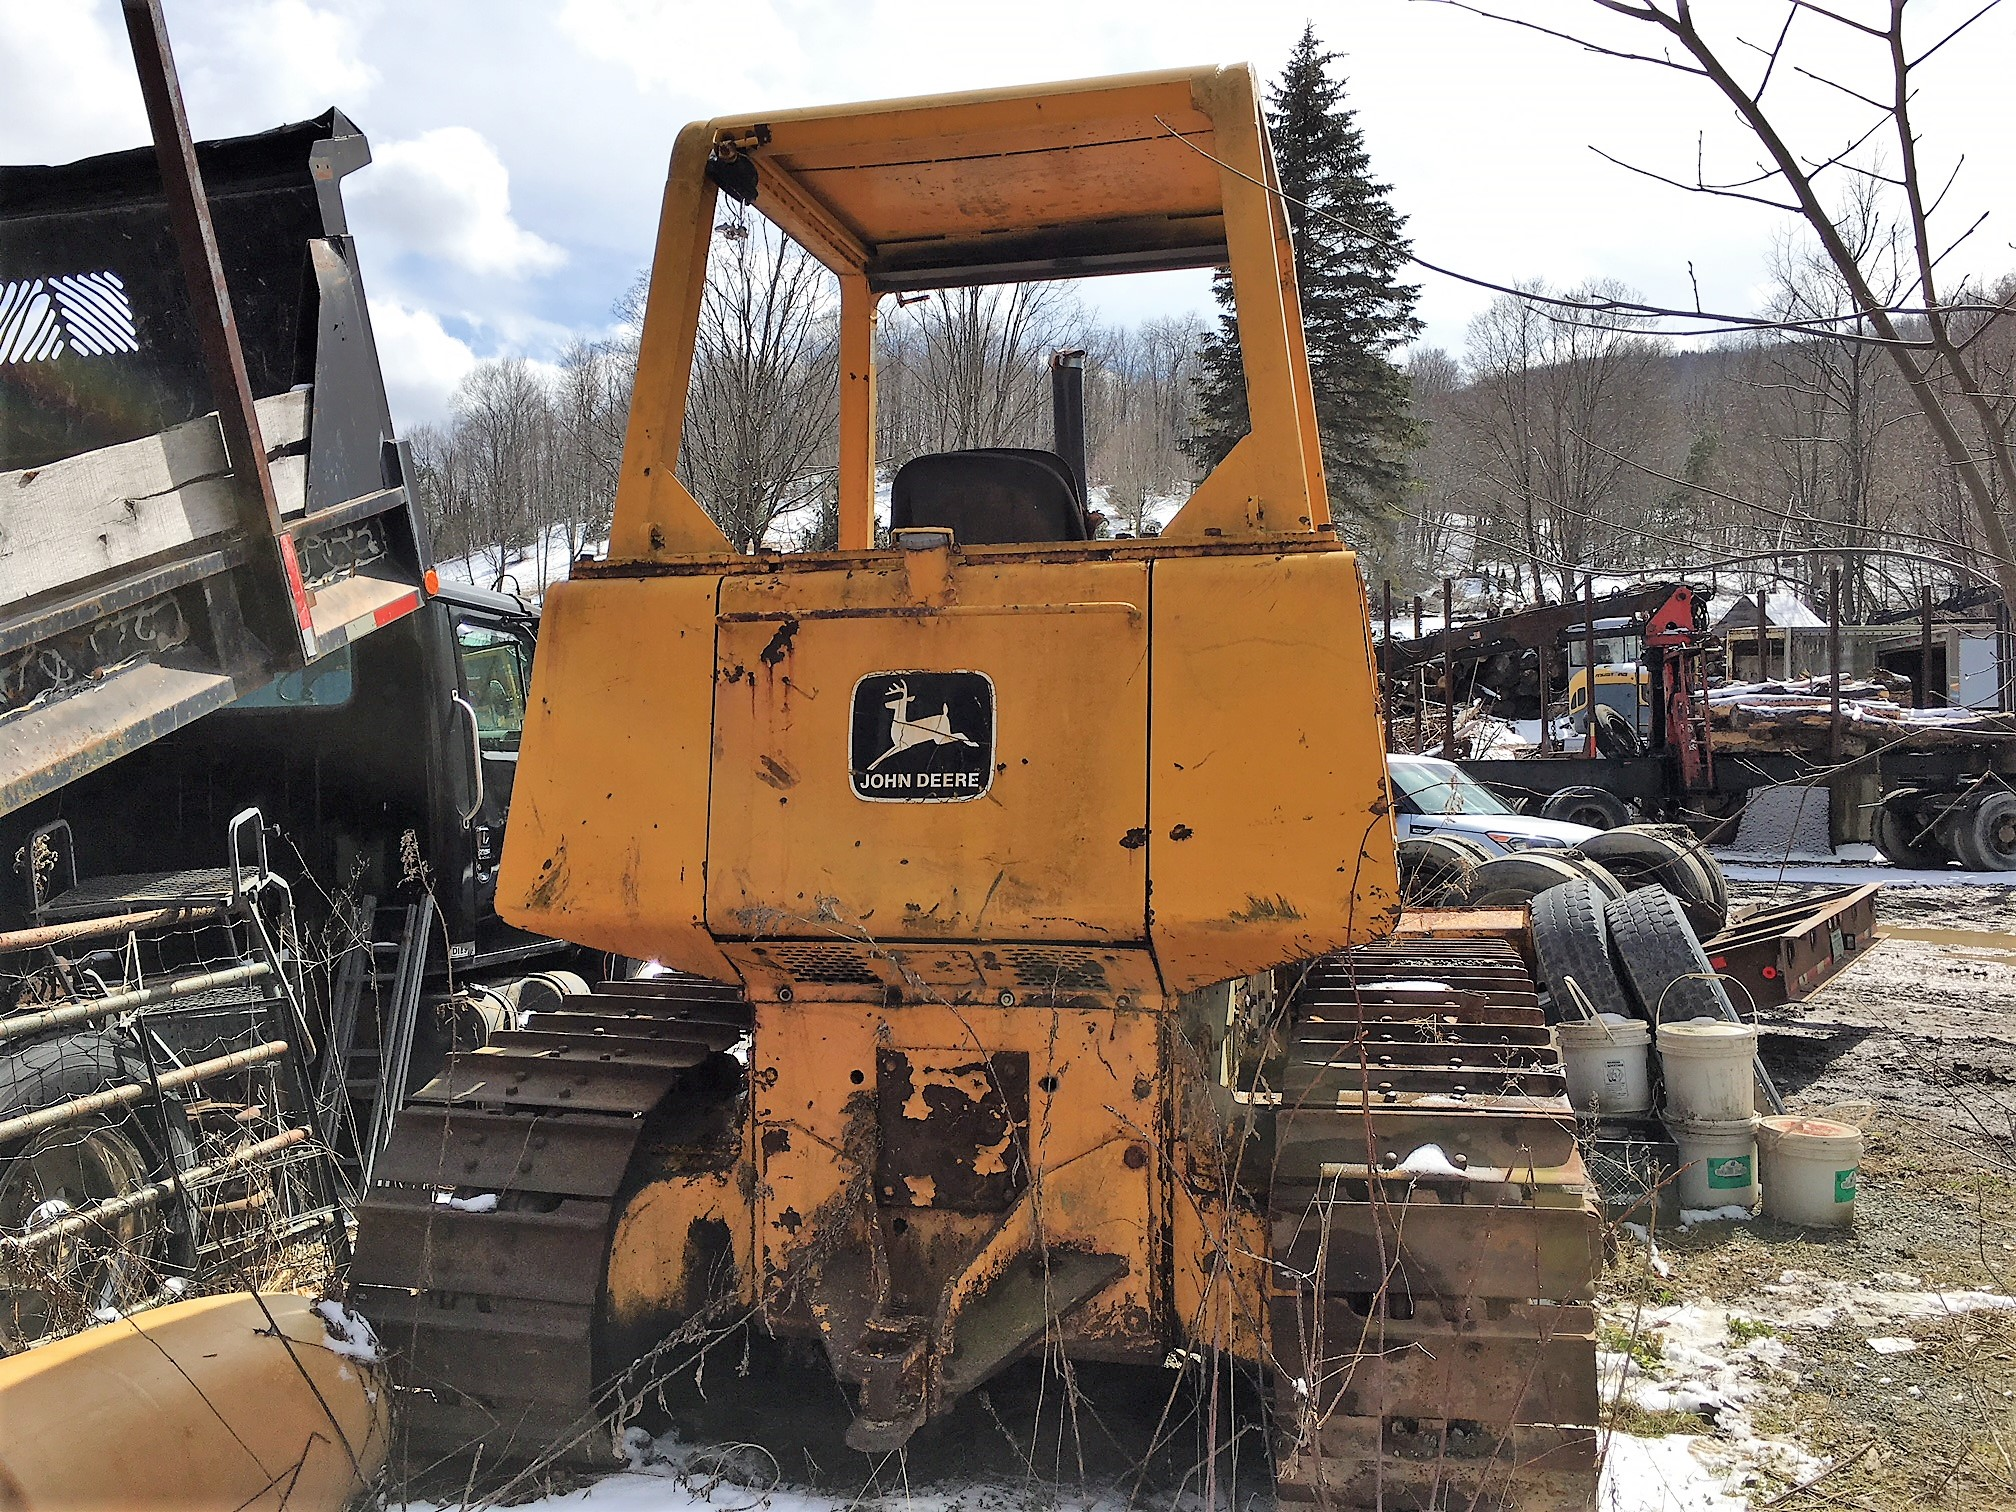 John Deere 750 E Parts Bulldozer $7'000 - United Exchange USA